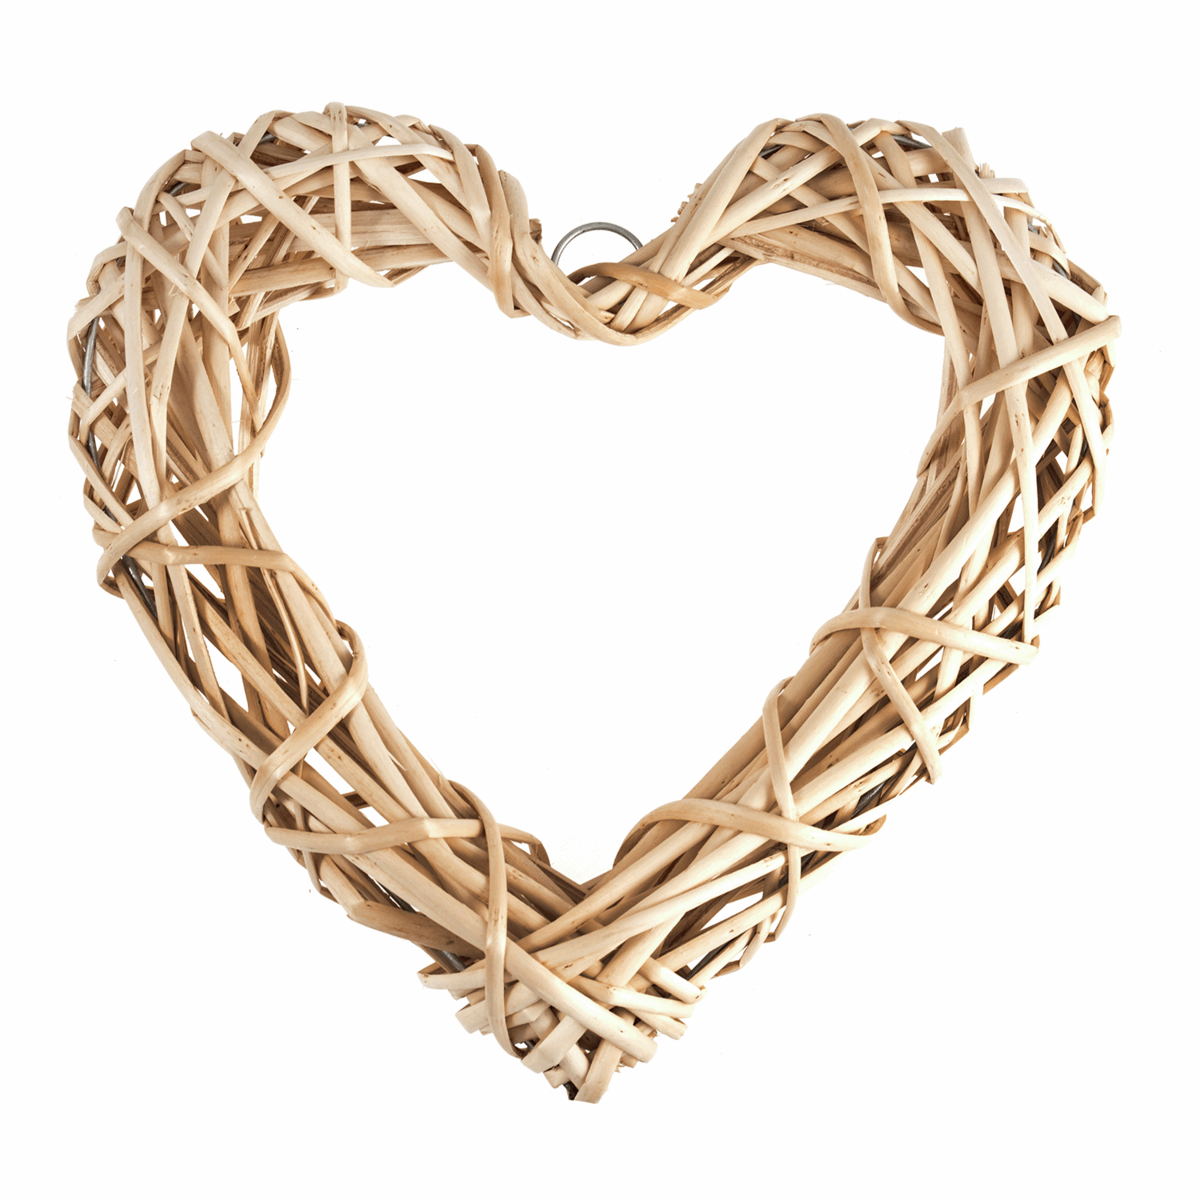 Picture of Wreath Base: Light Willow Heart: 30cm/11.8in